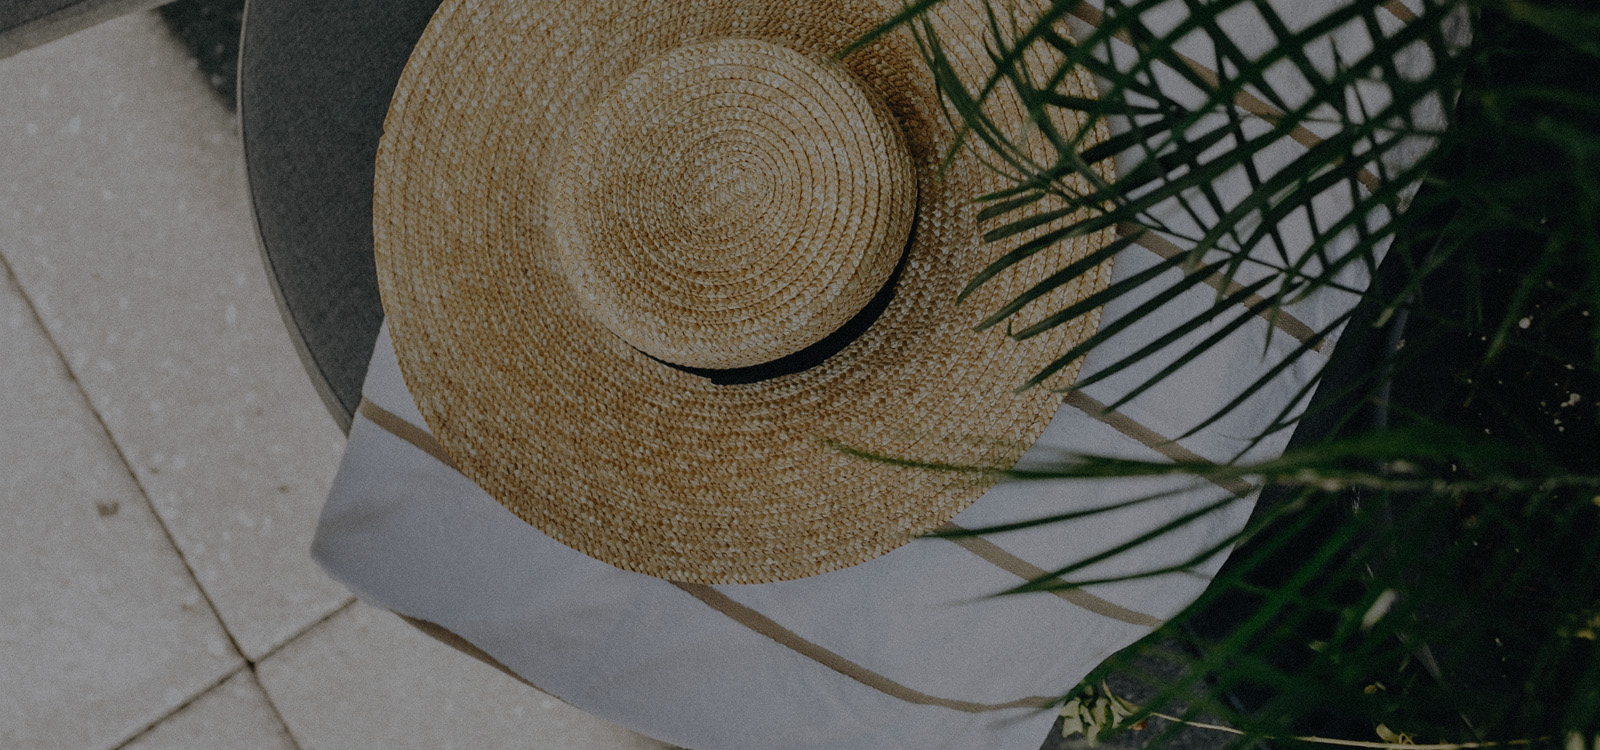 A straw hat placed on a towel